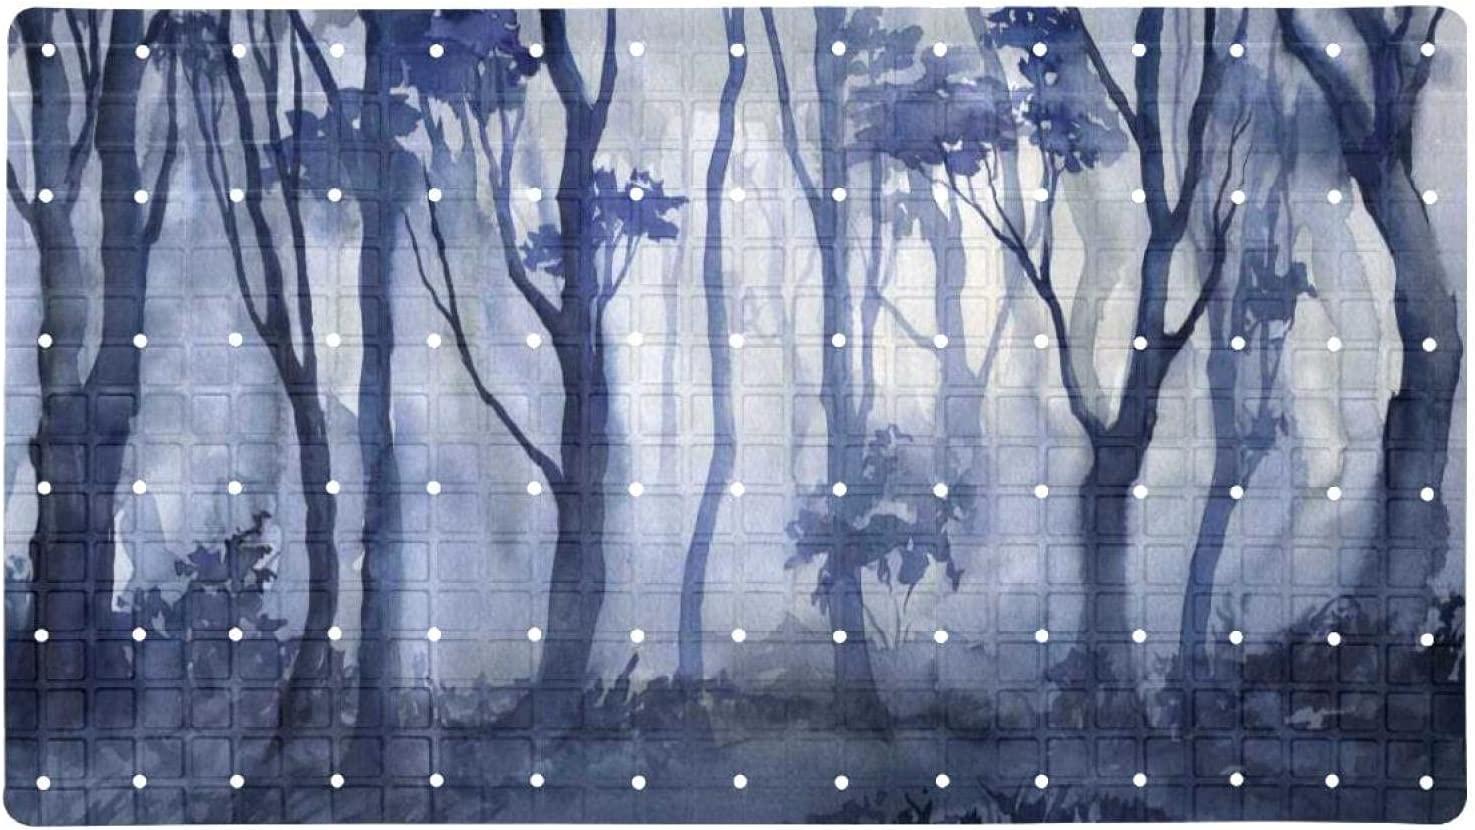 Bath Tub Shower Mat 15.7x27.9 inches Painting Ink Outstanding Forest Max 42% OFF Print w